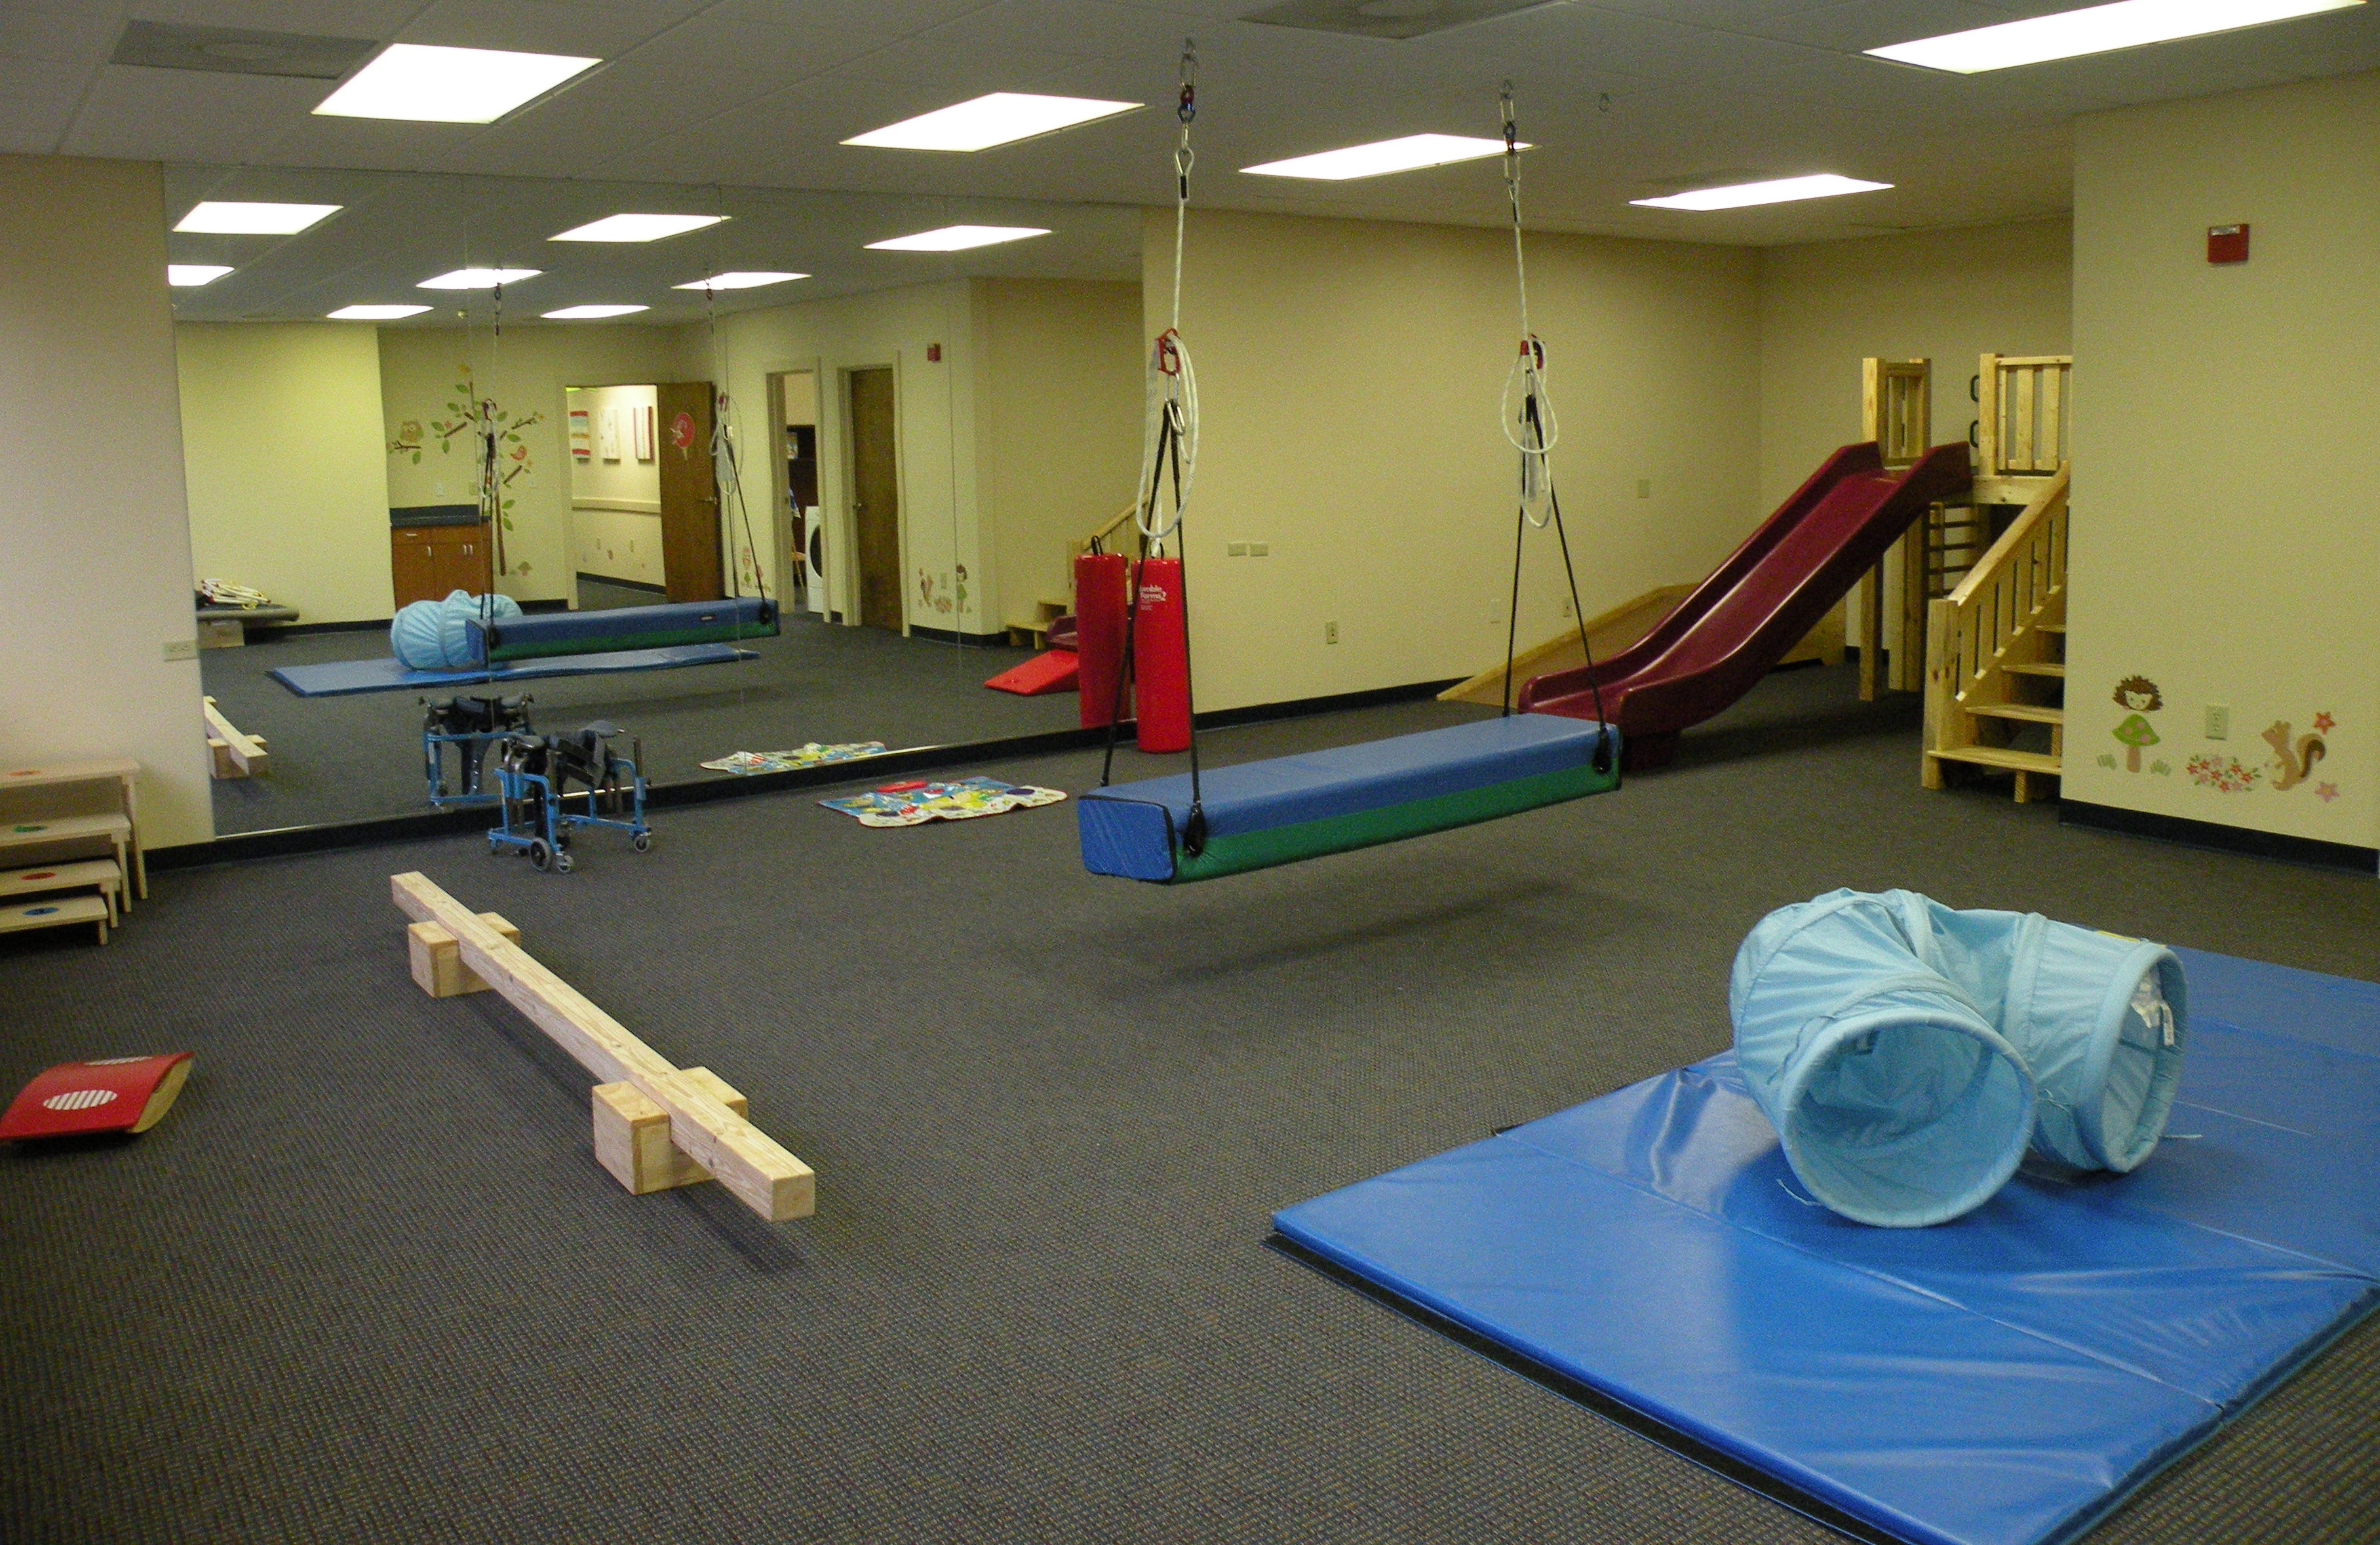 Clinic pediatric physical therapy - Clinic Pediatric Physical Therapy 9